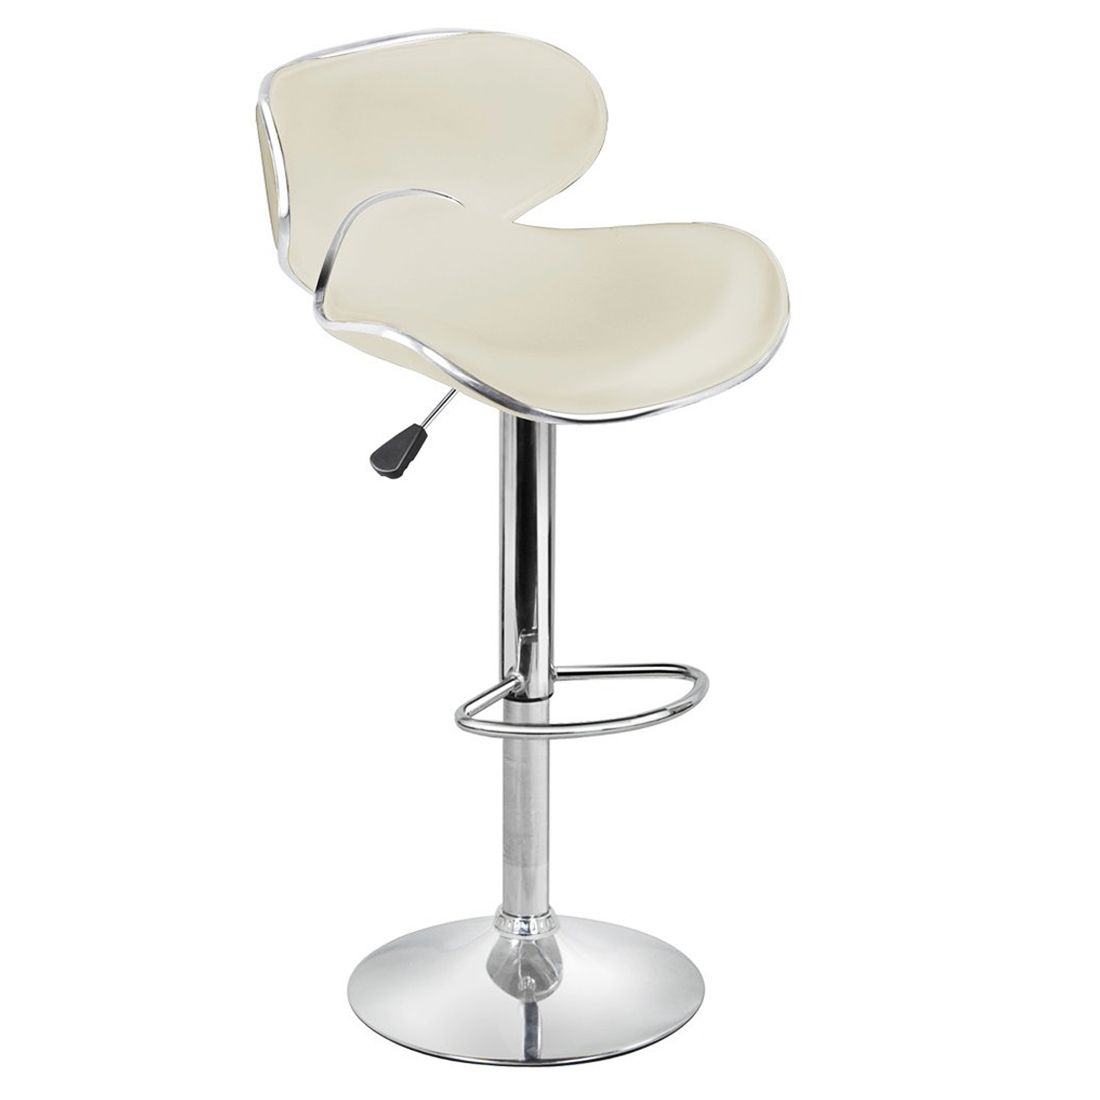 Best 2 Faux Leather Kitchen Breakfast Bar Stool Barstools Swivel Stools   Style C  WhiteCompare Prices on Breakfast Bar Kitchen  Online Shopping Buy Low  . Kitchen Breakfast Bar Chairs. Home Design Ideas